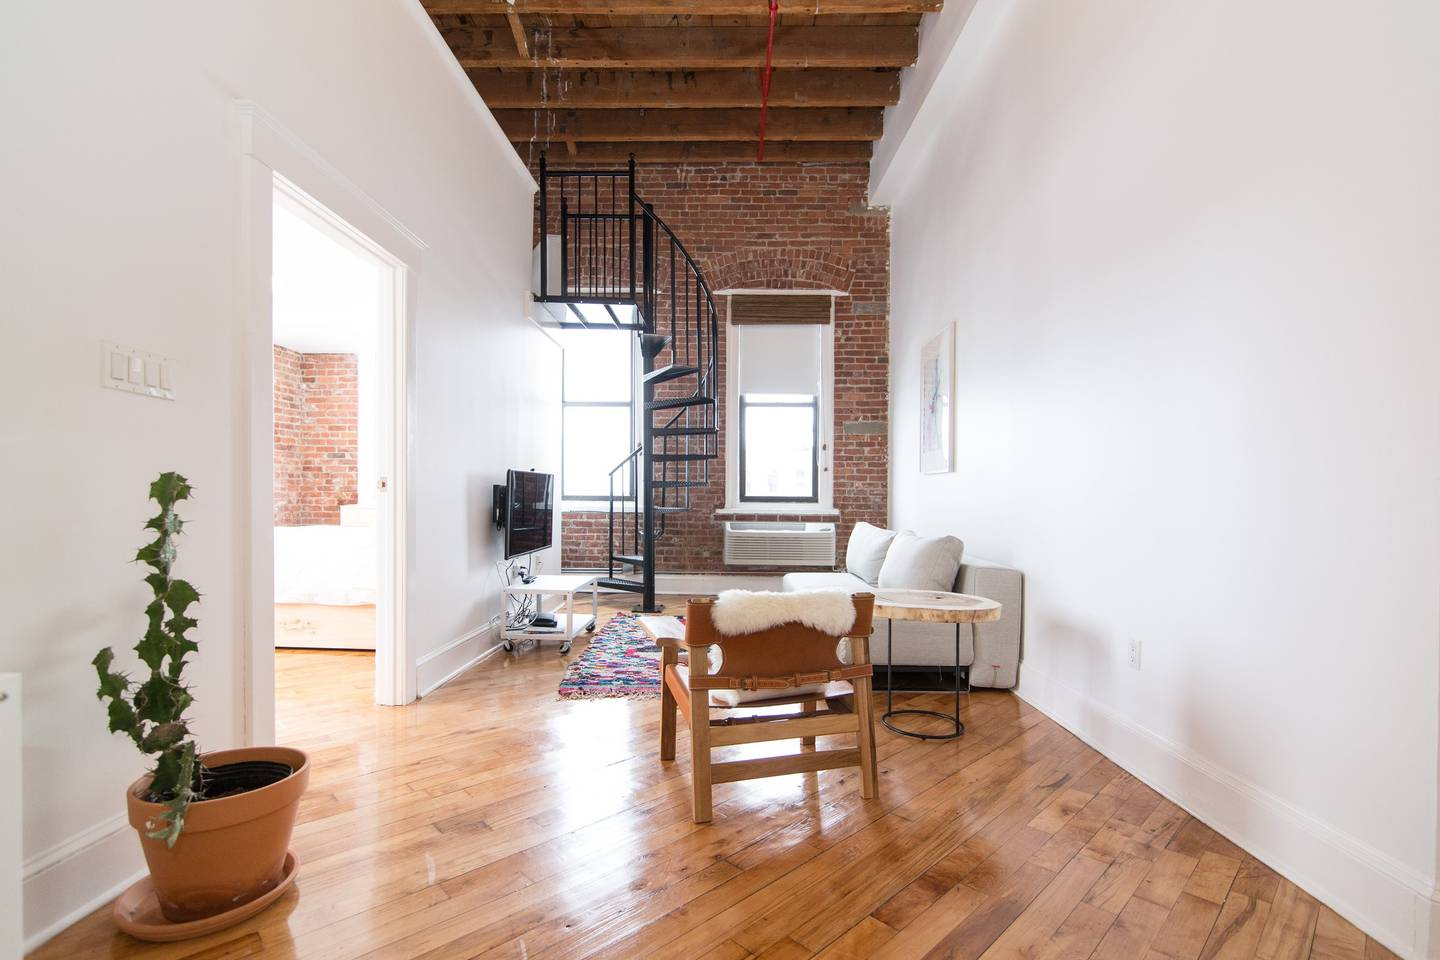 brooklyn urban and trendy airbnb loft space